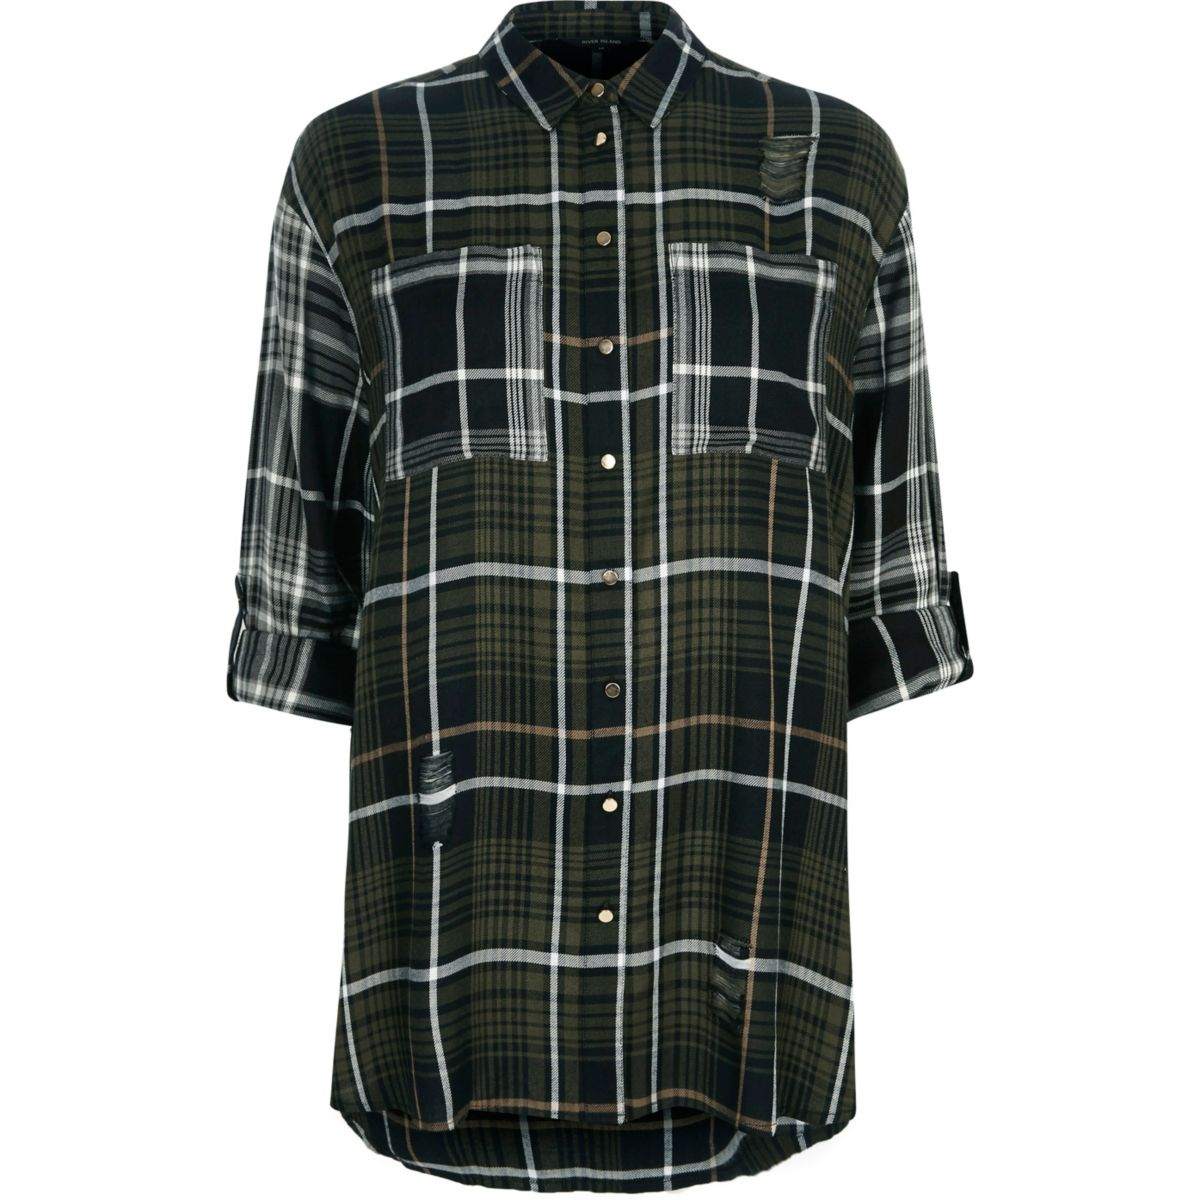 Khaki green check oversized shirt